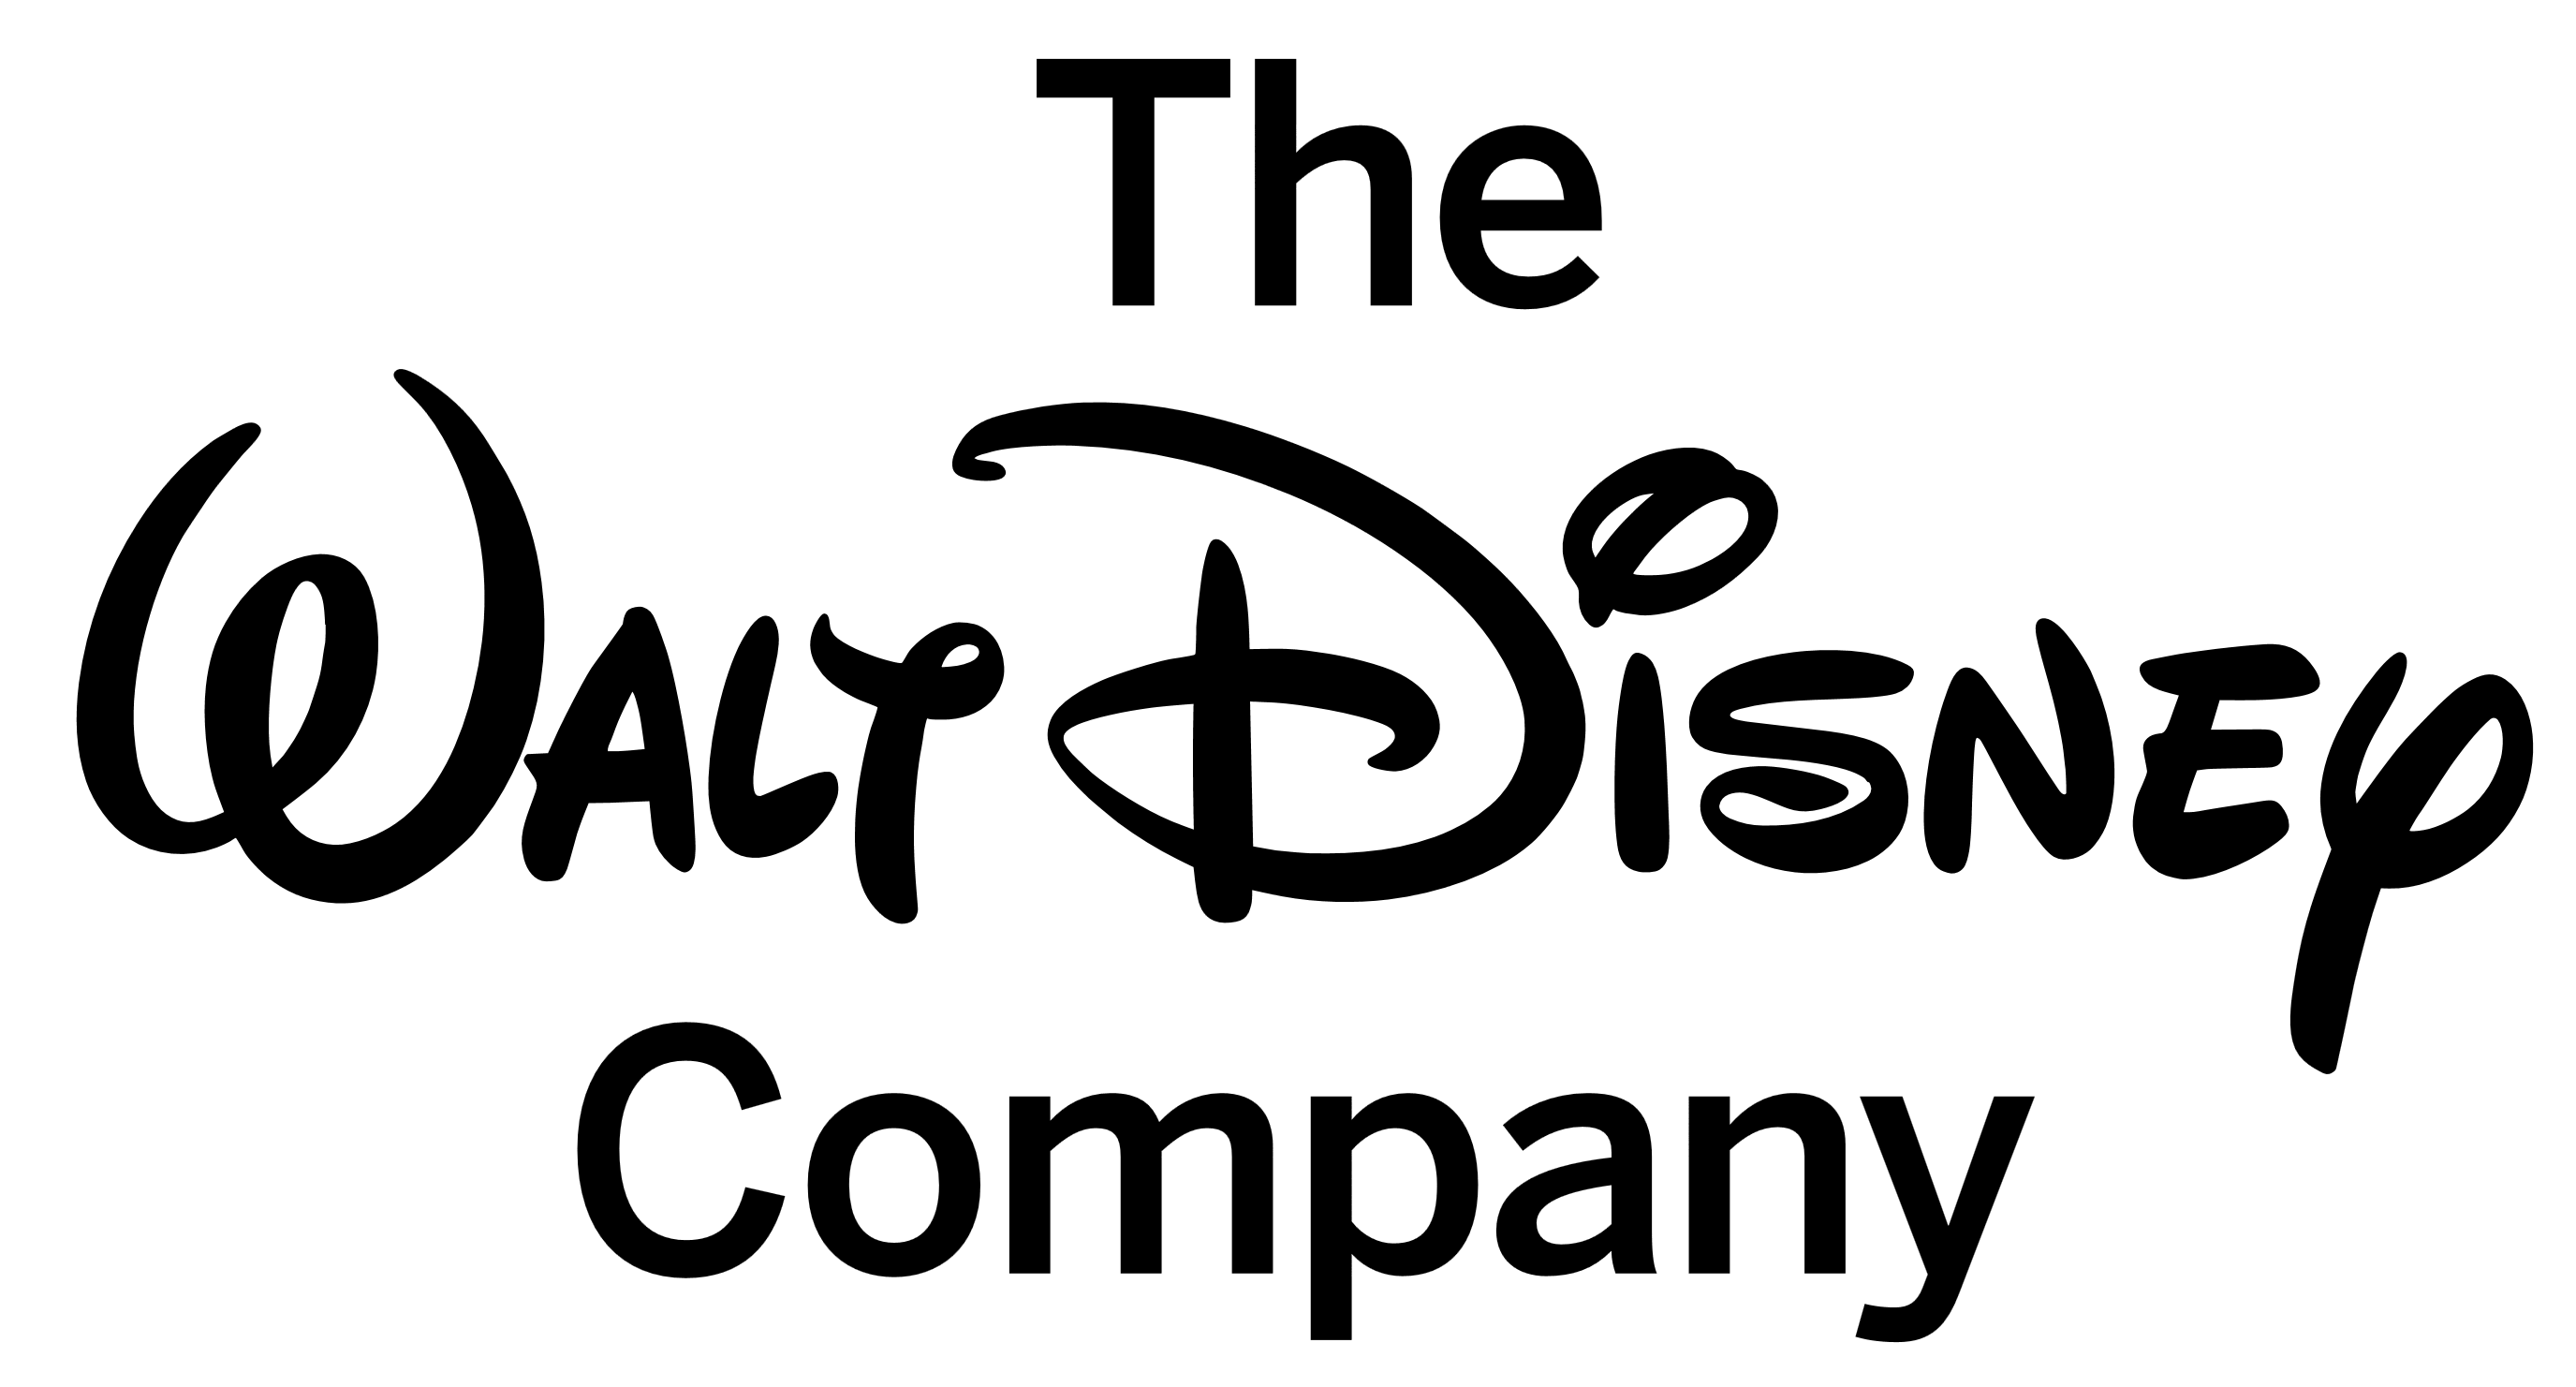 Disney Adds Two New People to Board of Directors